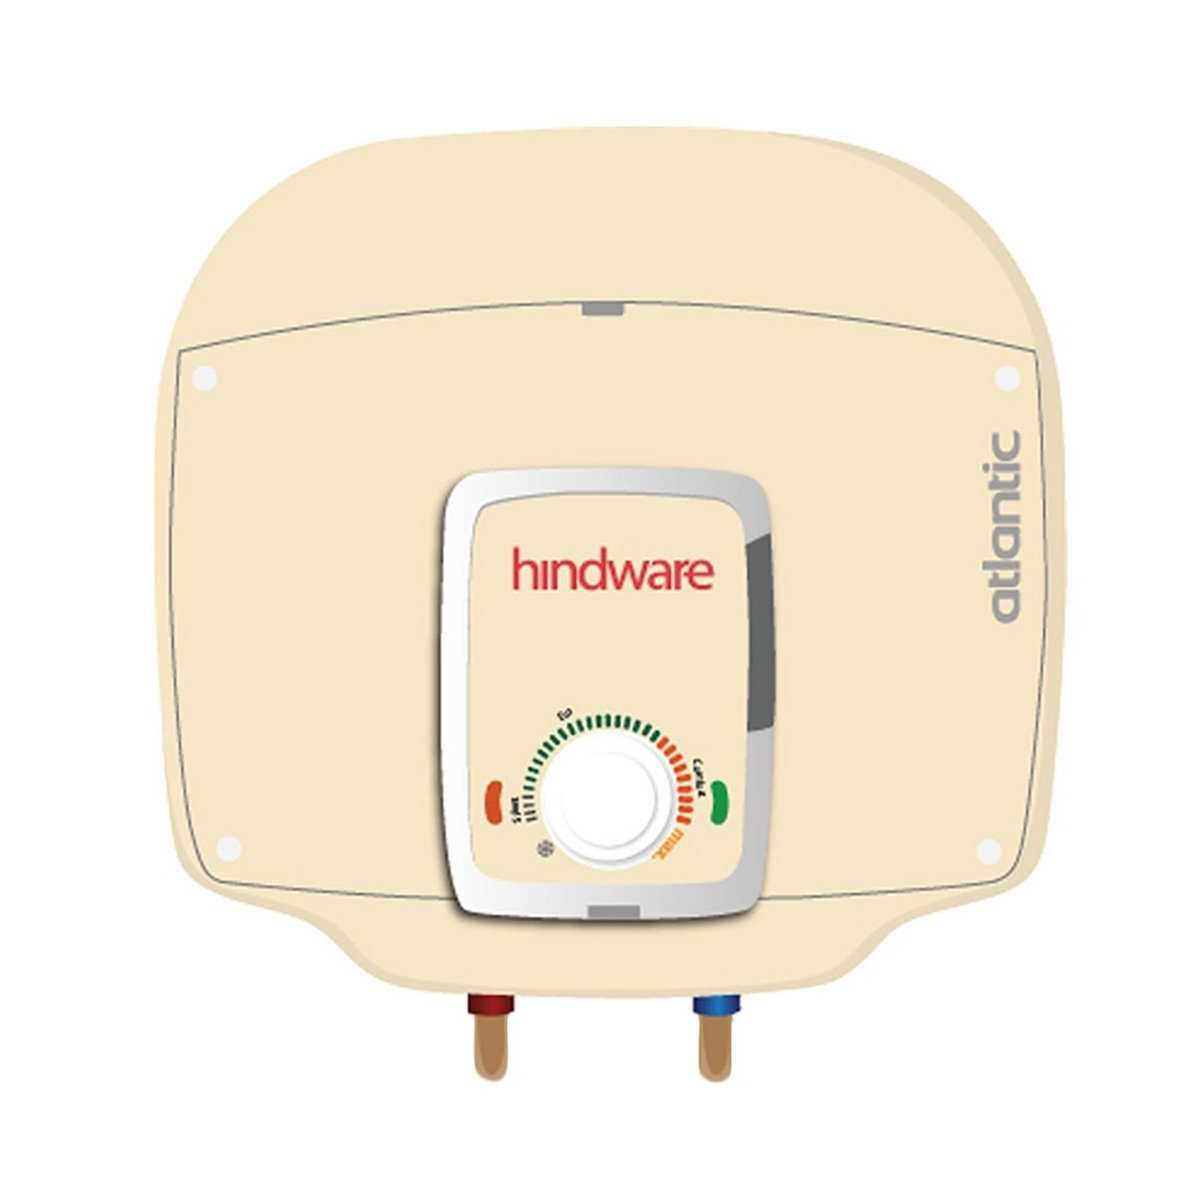 Hindware Atlantic Ondeo HS25PII25 25 Litre Storage Water Heater